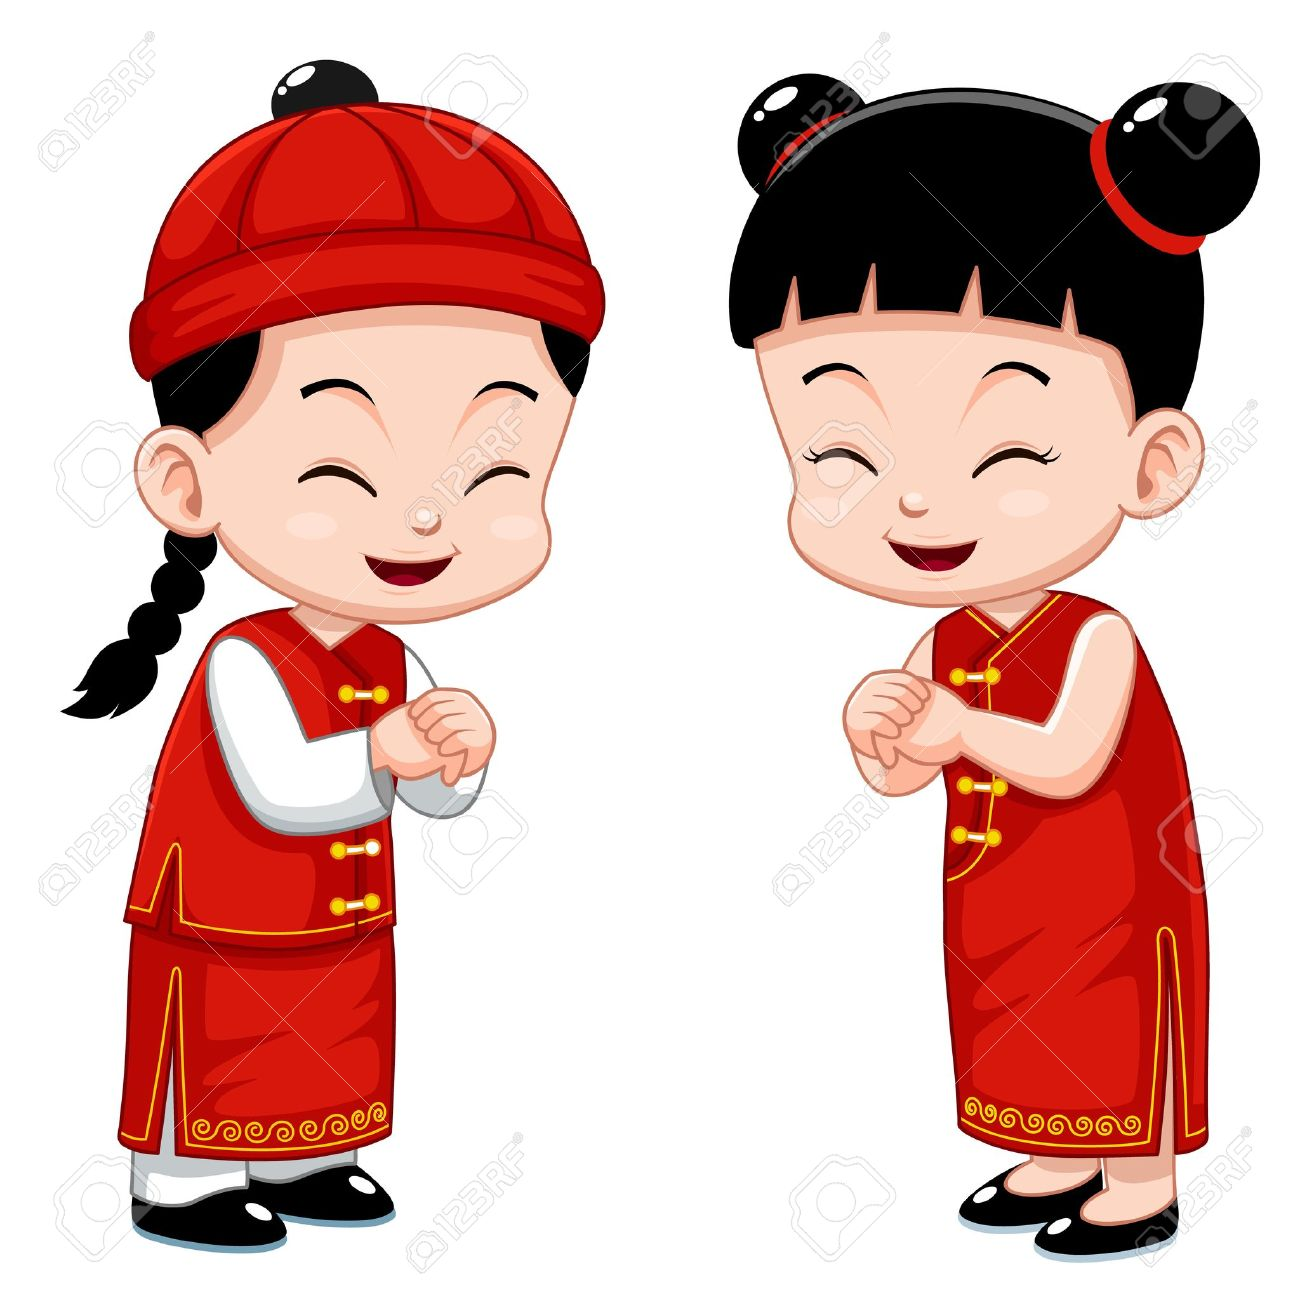 2 843 chinese boy stock vector illustration and royalty free